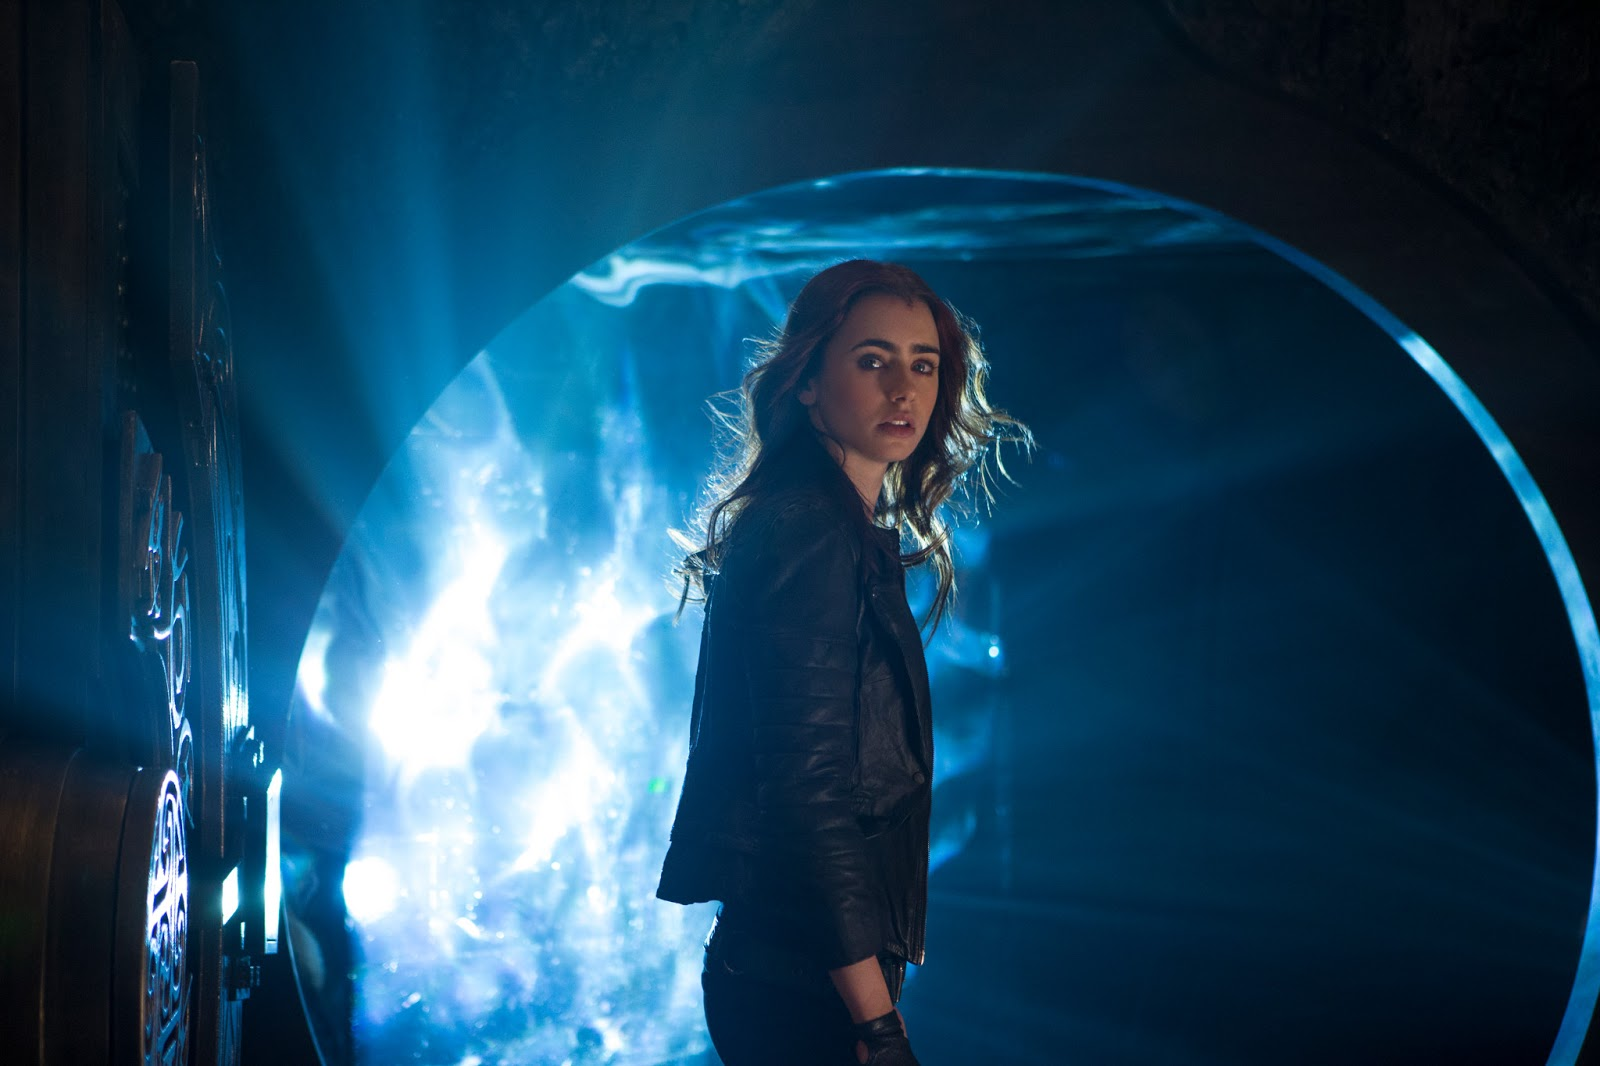 City of bones movie Stills